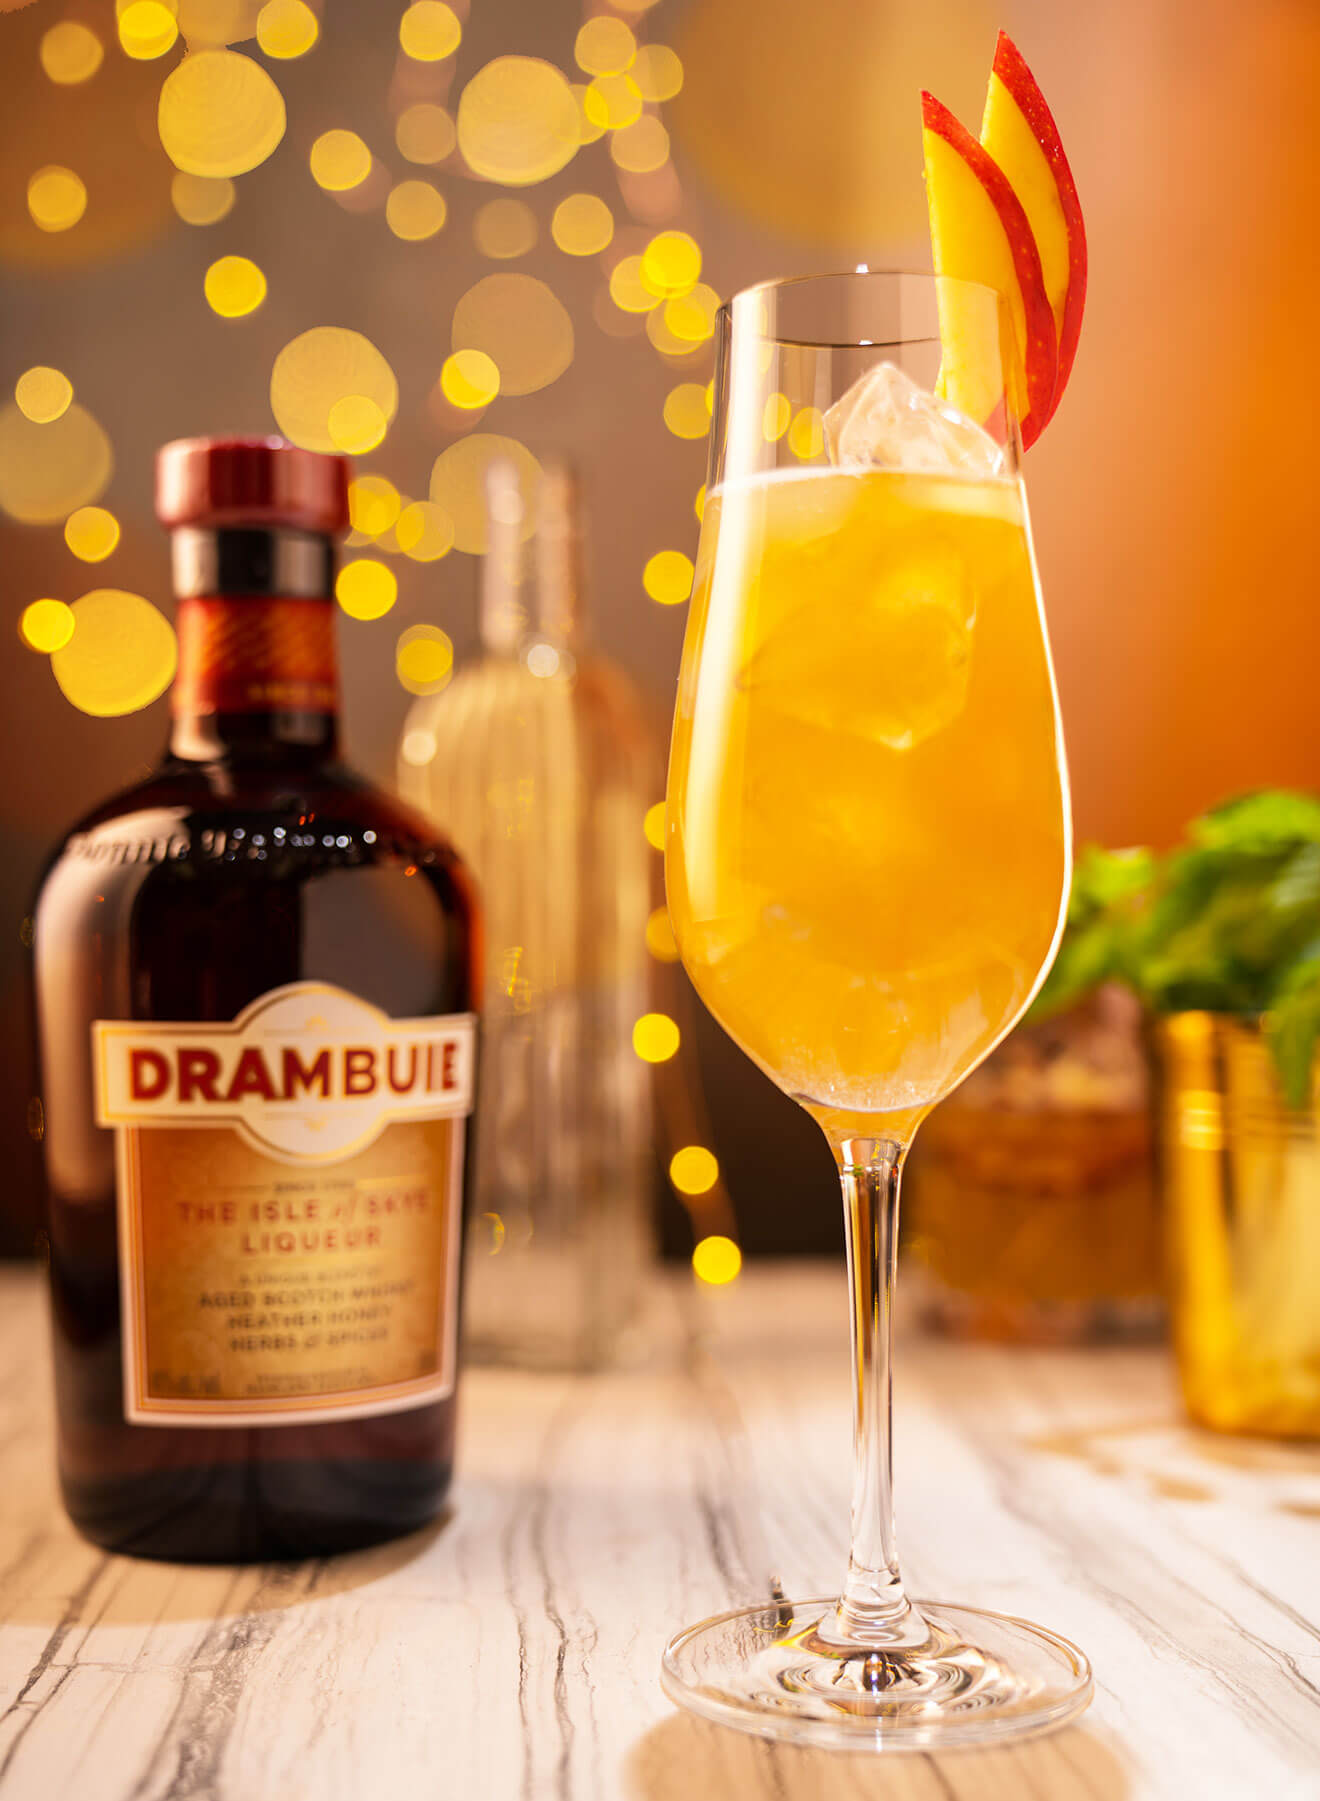 Chilled Drink of the Week: Drambuie Apples & Honey